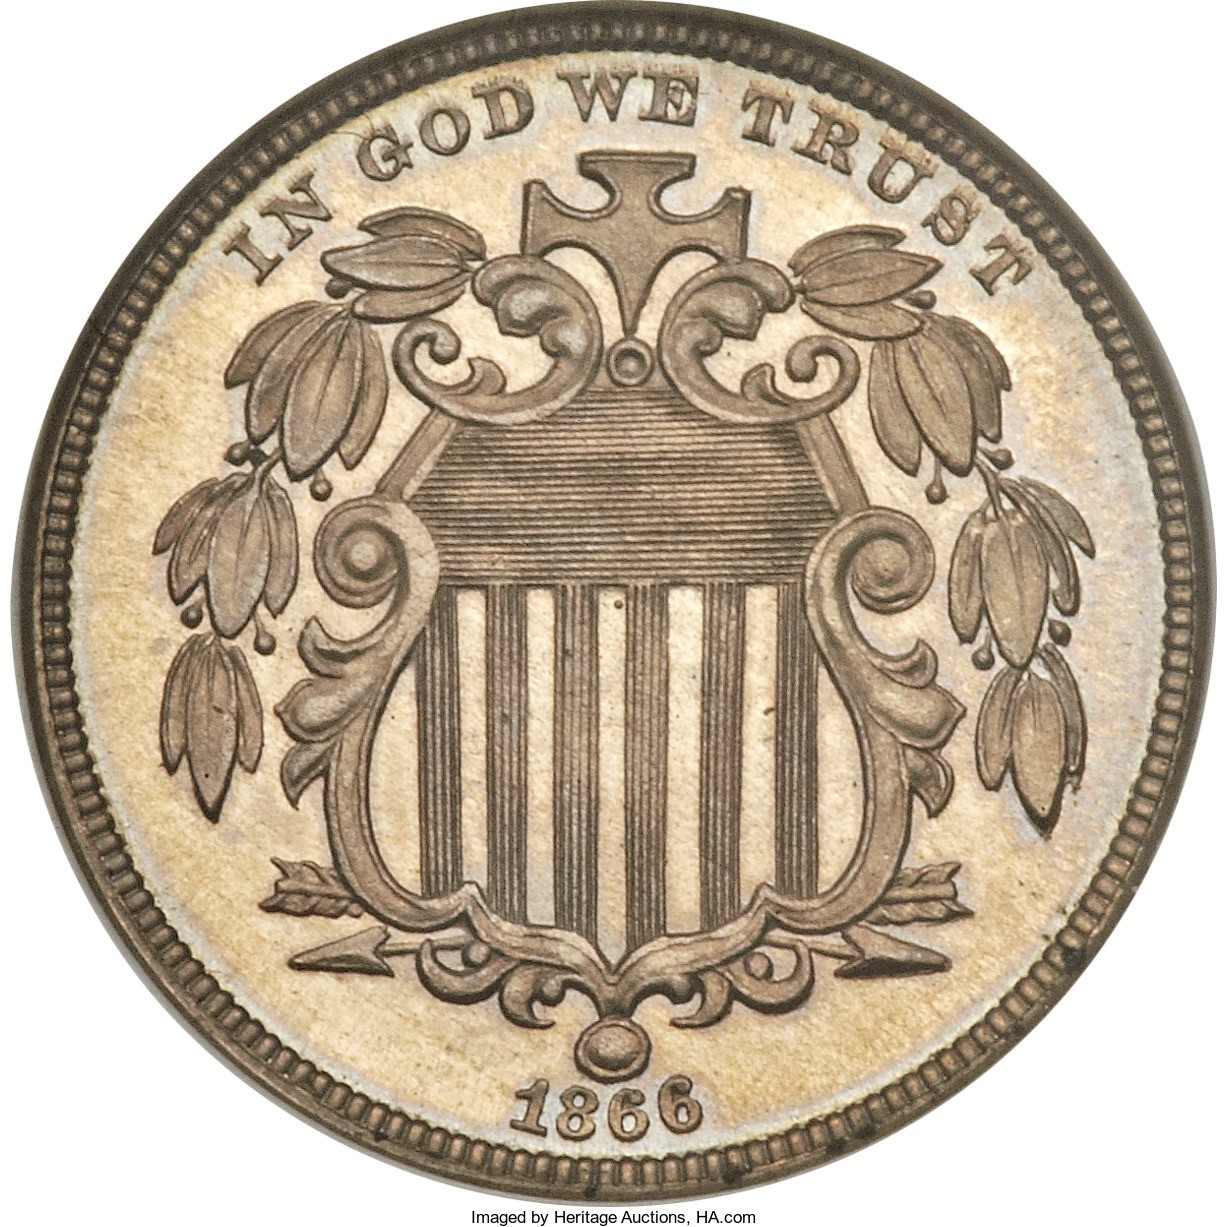 As the Civil War wound down, the government sought to replace the fragile paper fractional notes with coins. With silver still not circulating, the Mint turned to nickel coins to replace the silver half dime in 1866. Though not particularly beautiful, the Shield 5-cent piece was produced for 21 years.